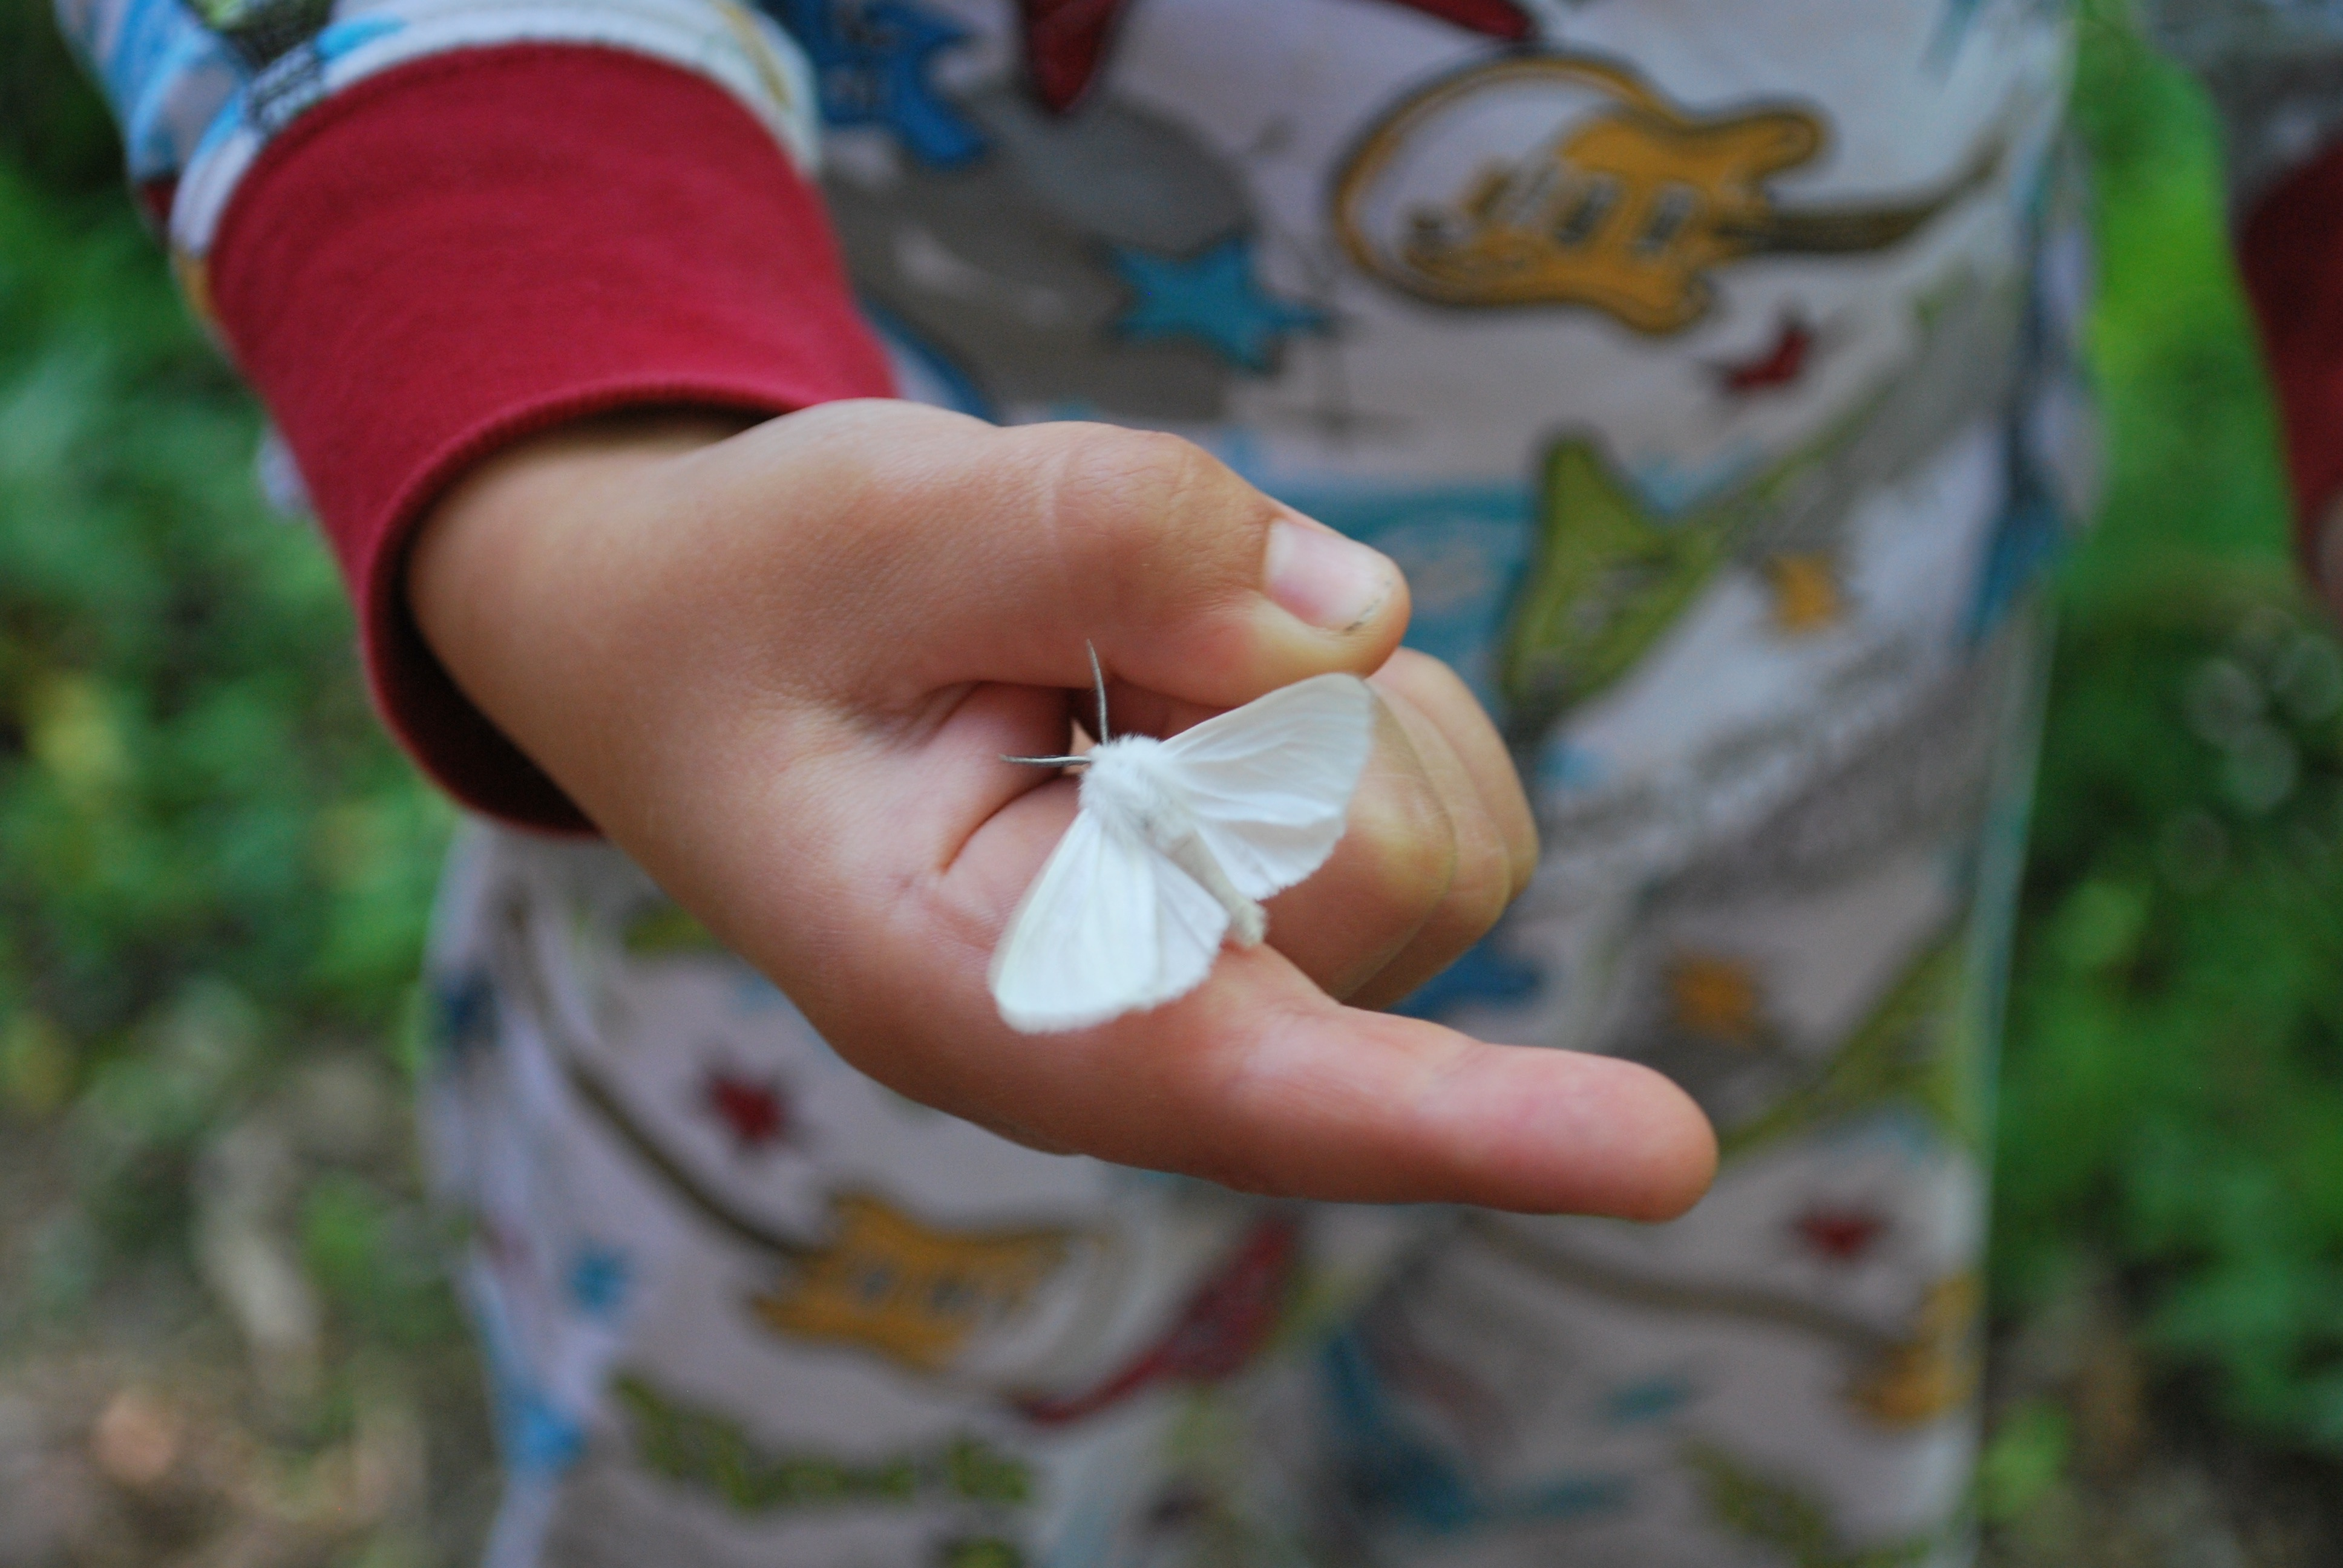 White moth on child's finger